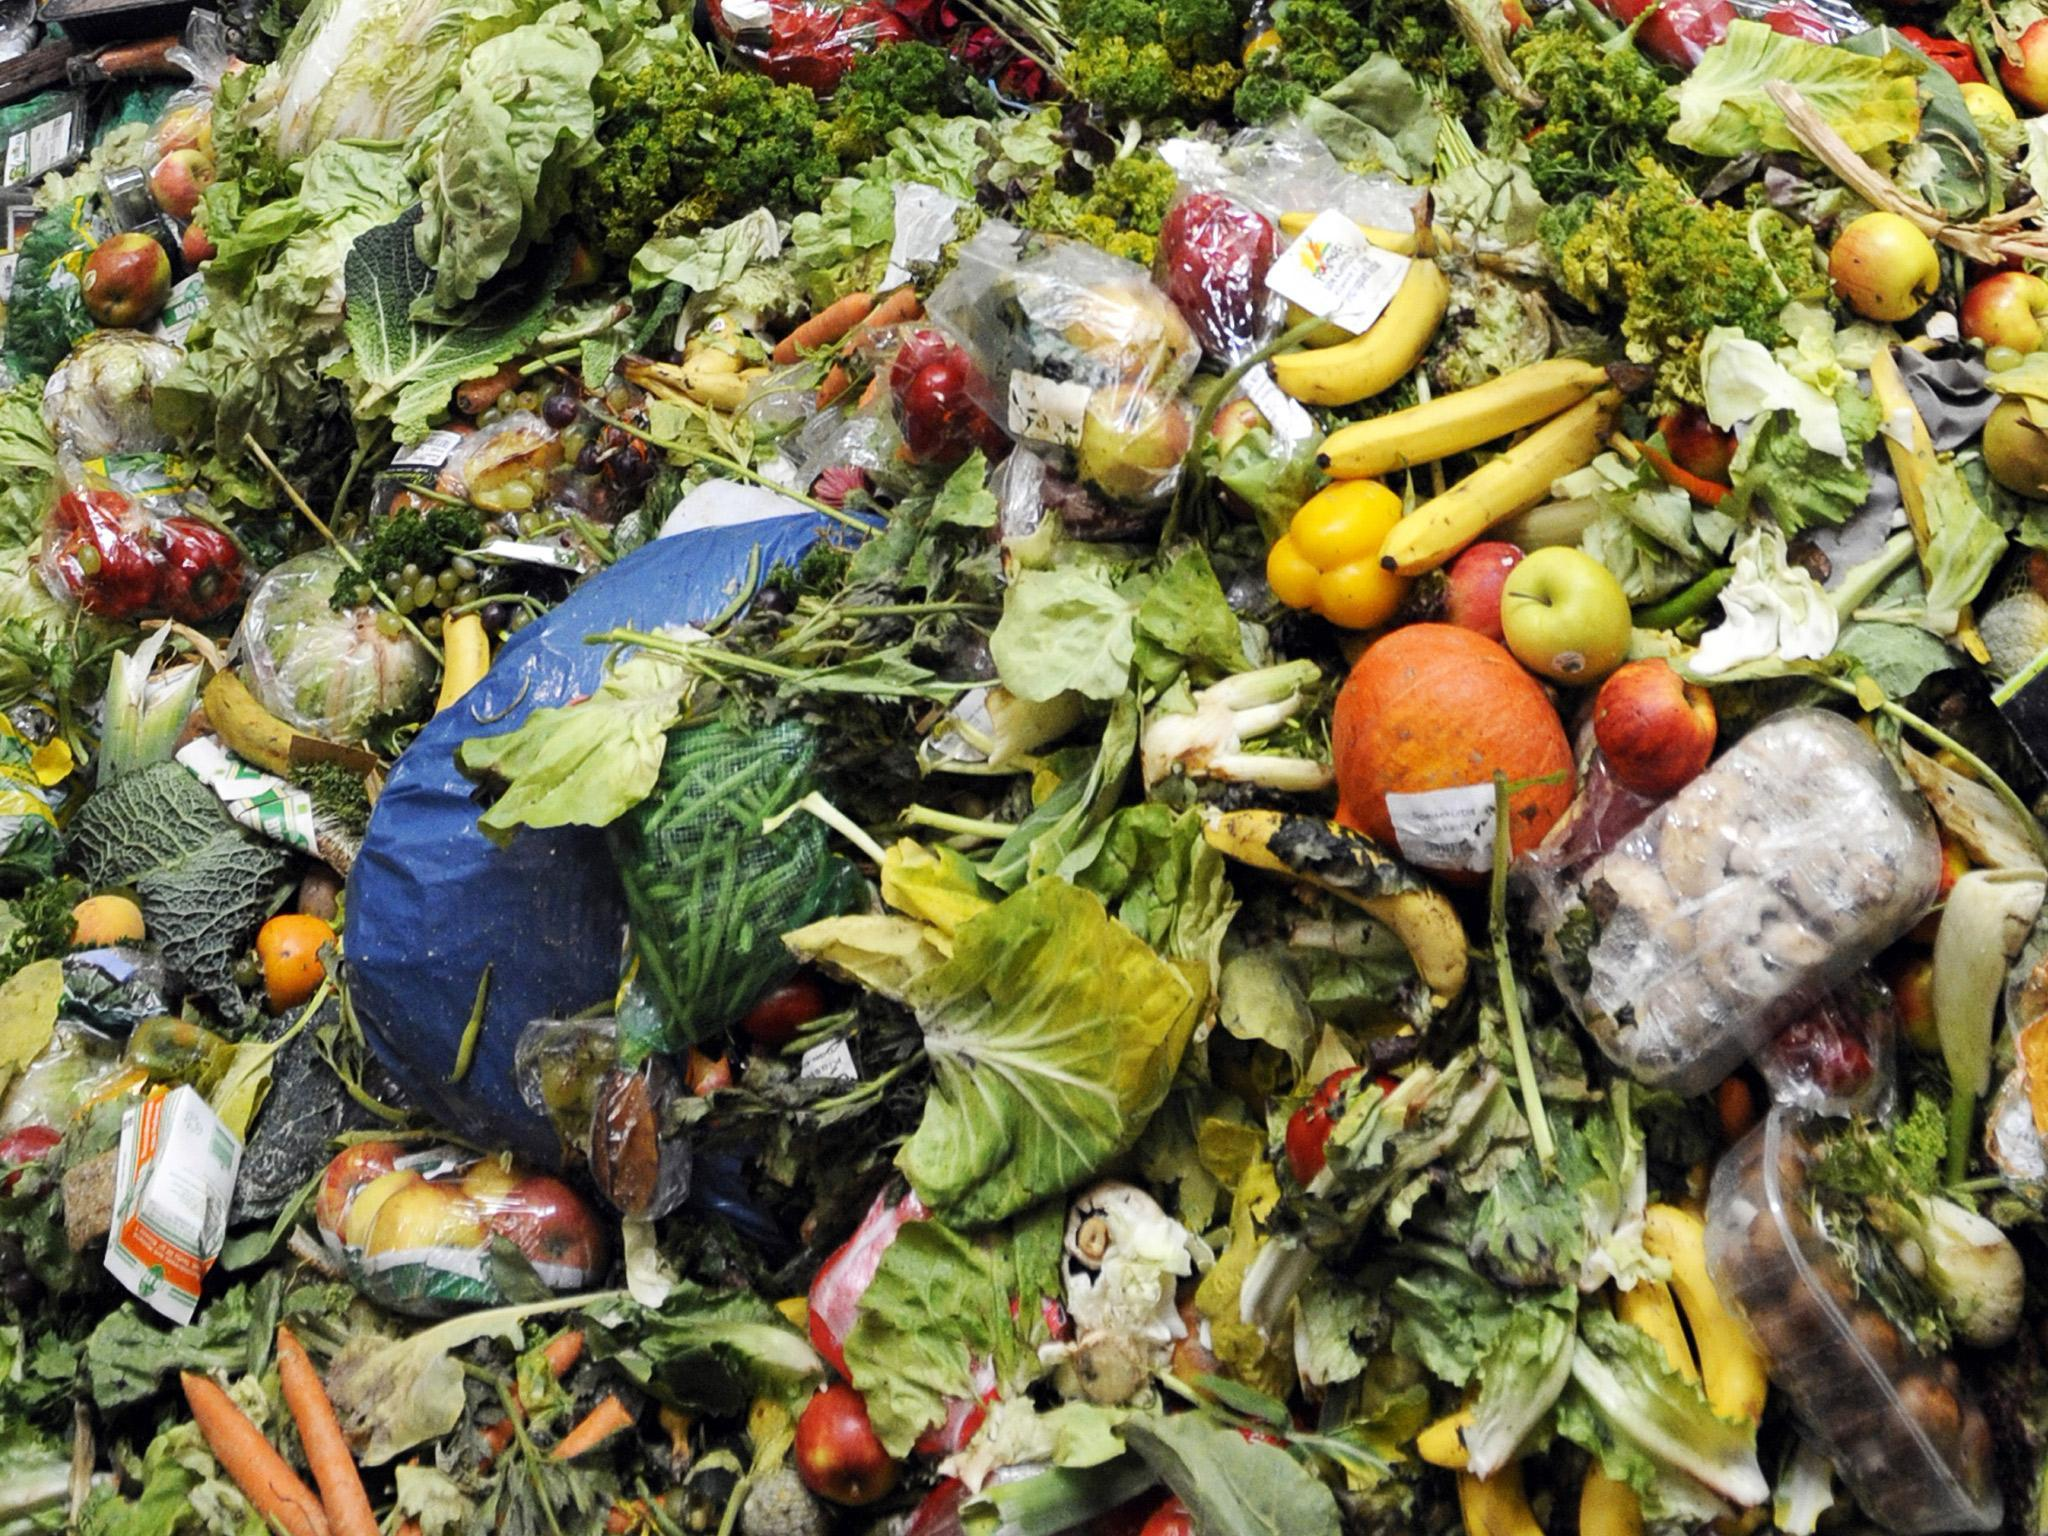 Want to fight climate change? Stop wasting food!